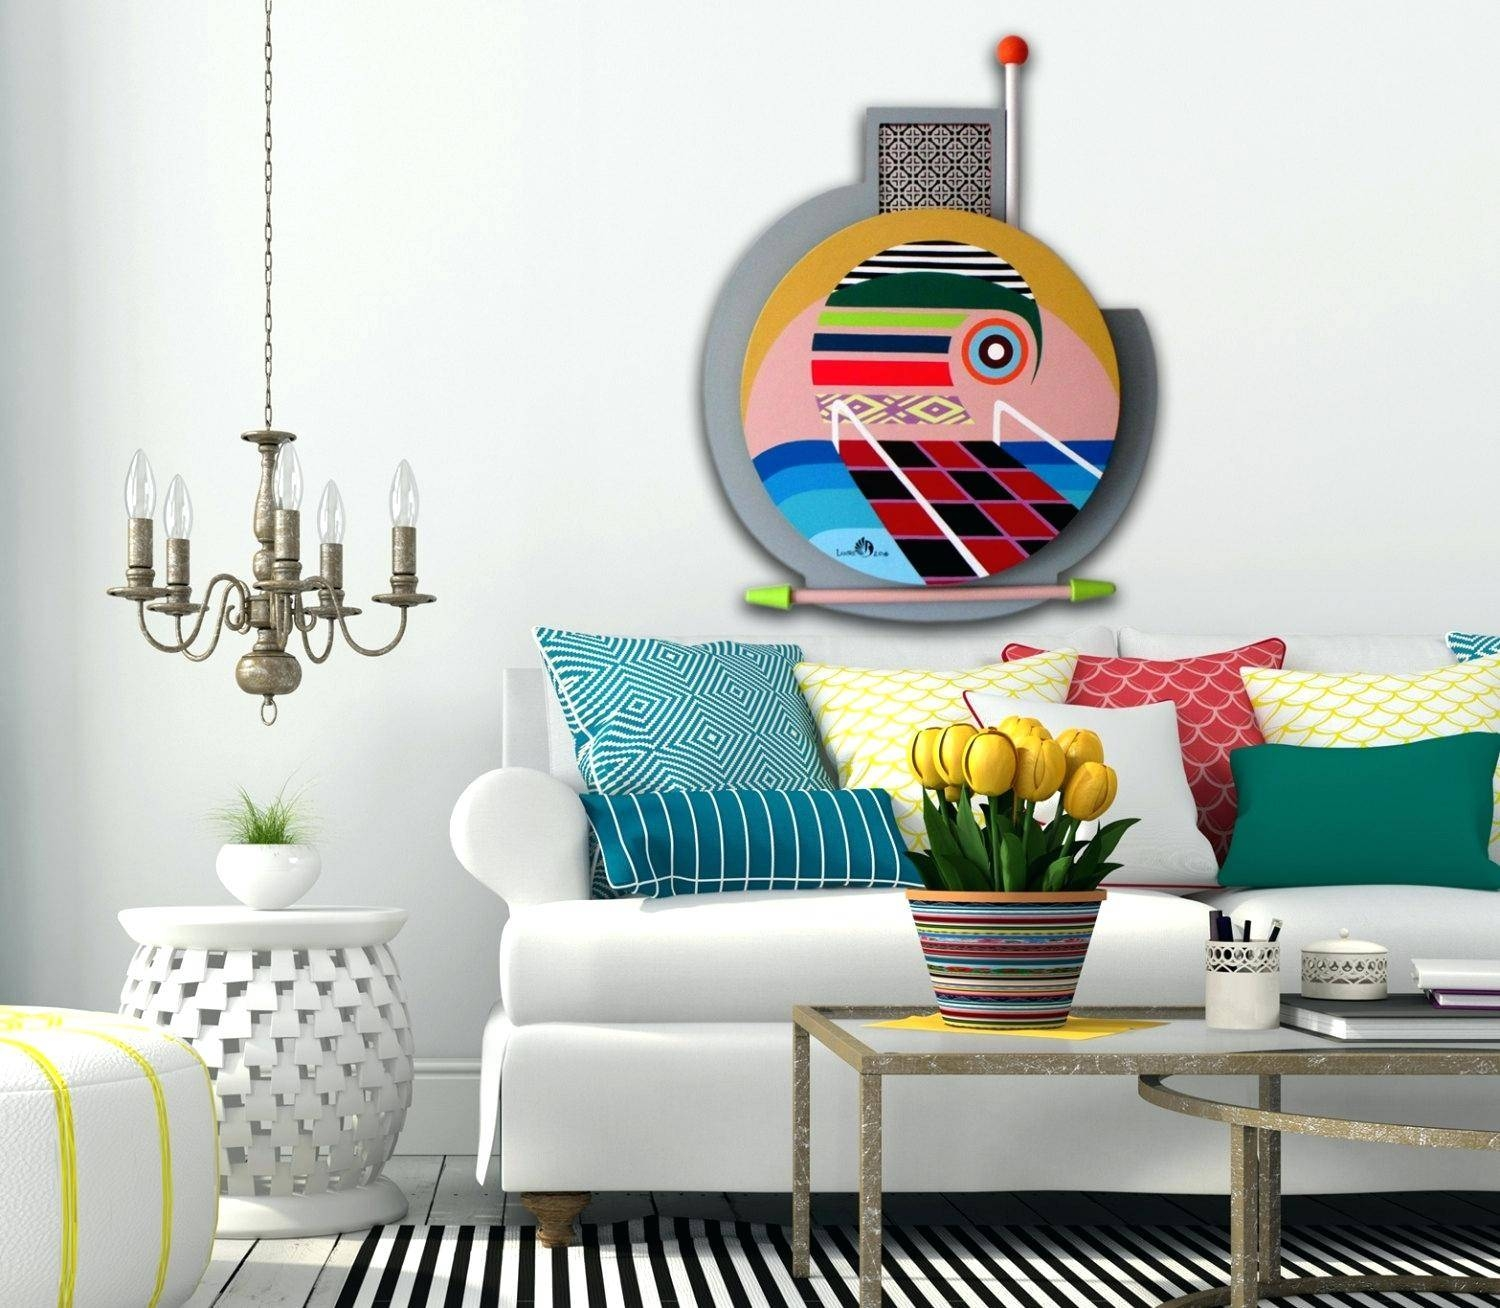 Wall Decor : 44 Abstract Wall Decor Cheap Bedroom Decor 2 Piece Within Current Cheap Abstract Wall Art (View 13 of 20)